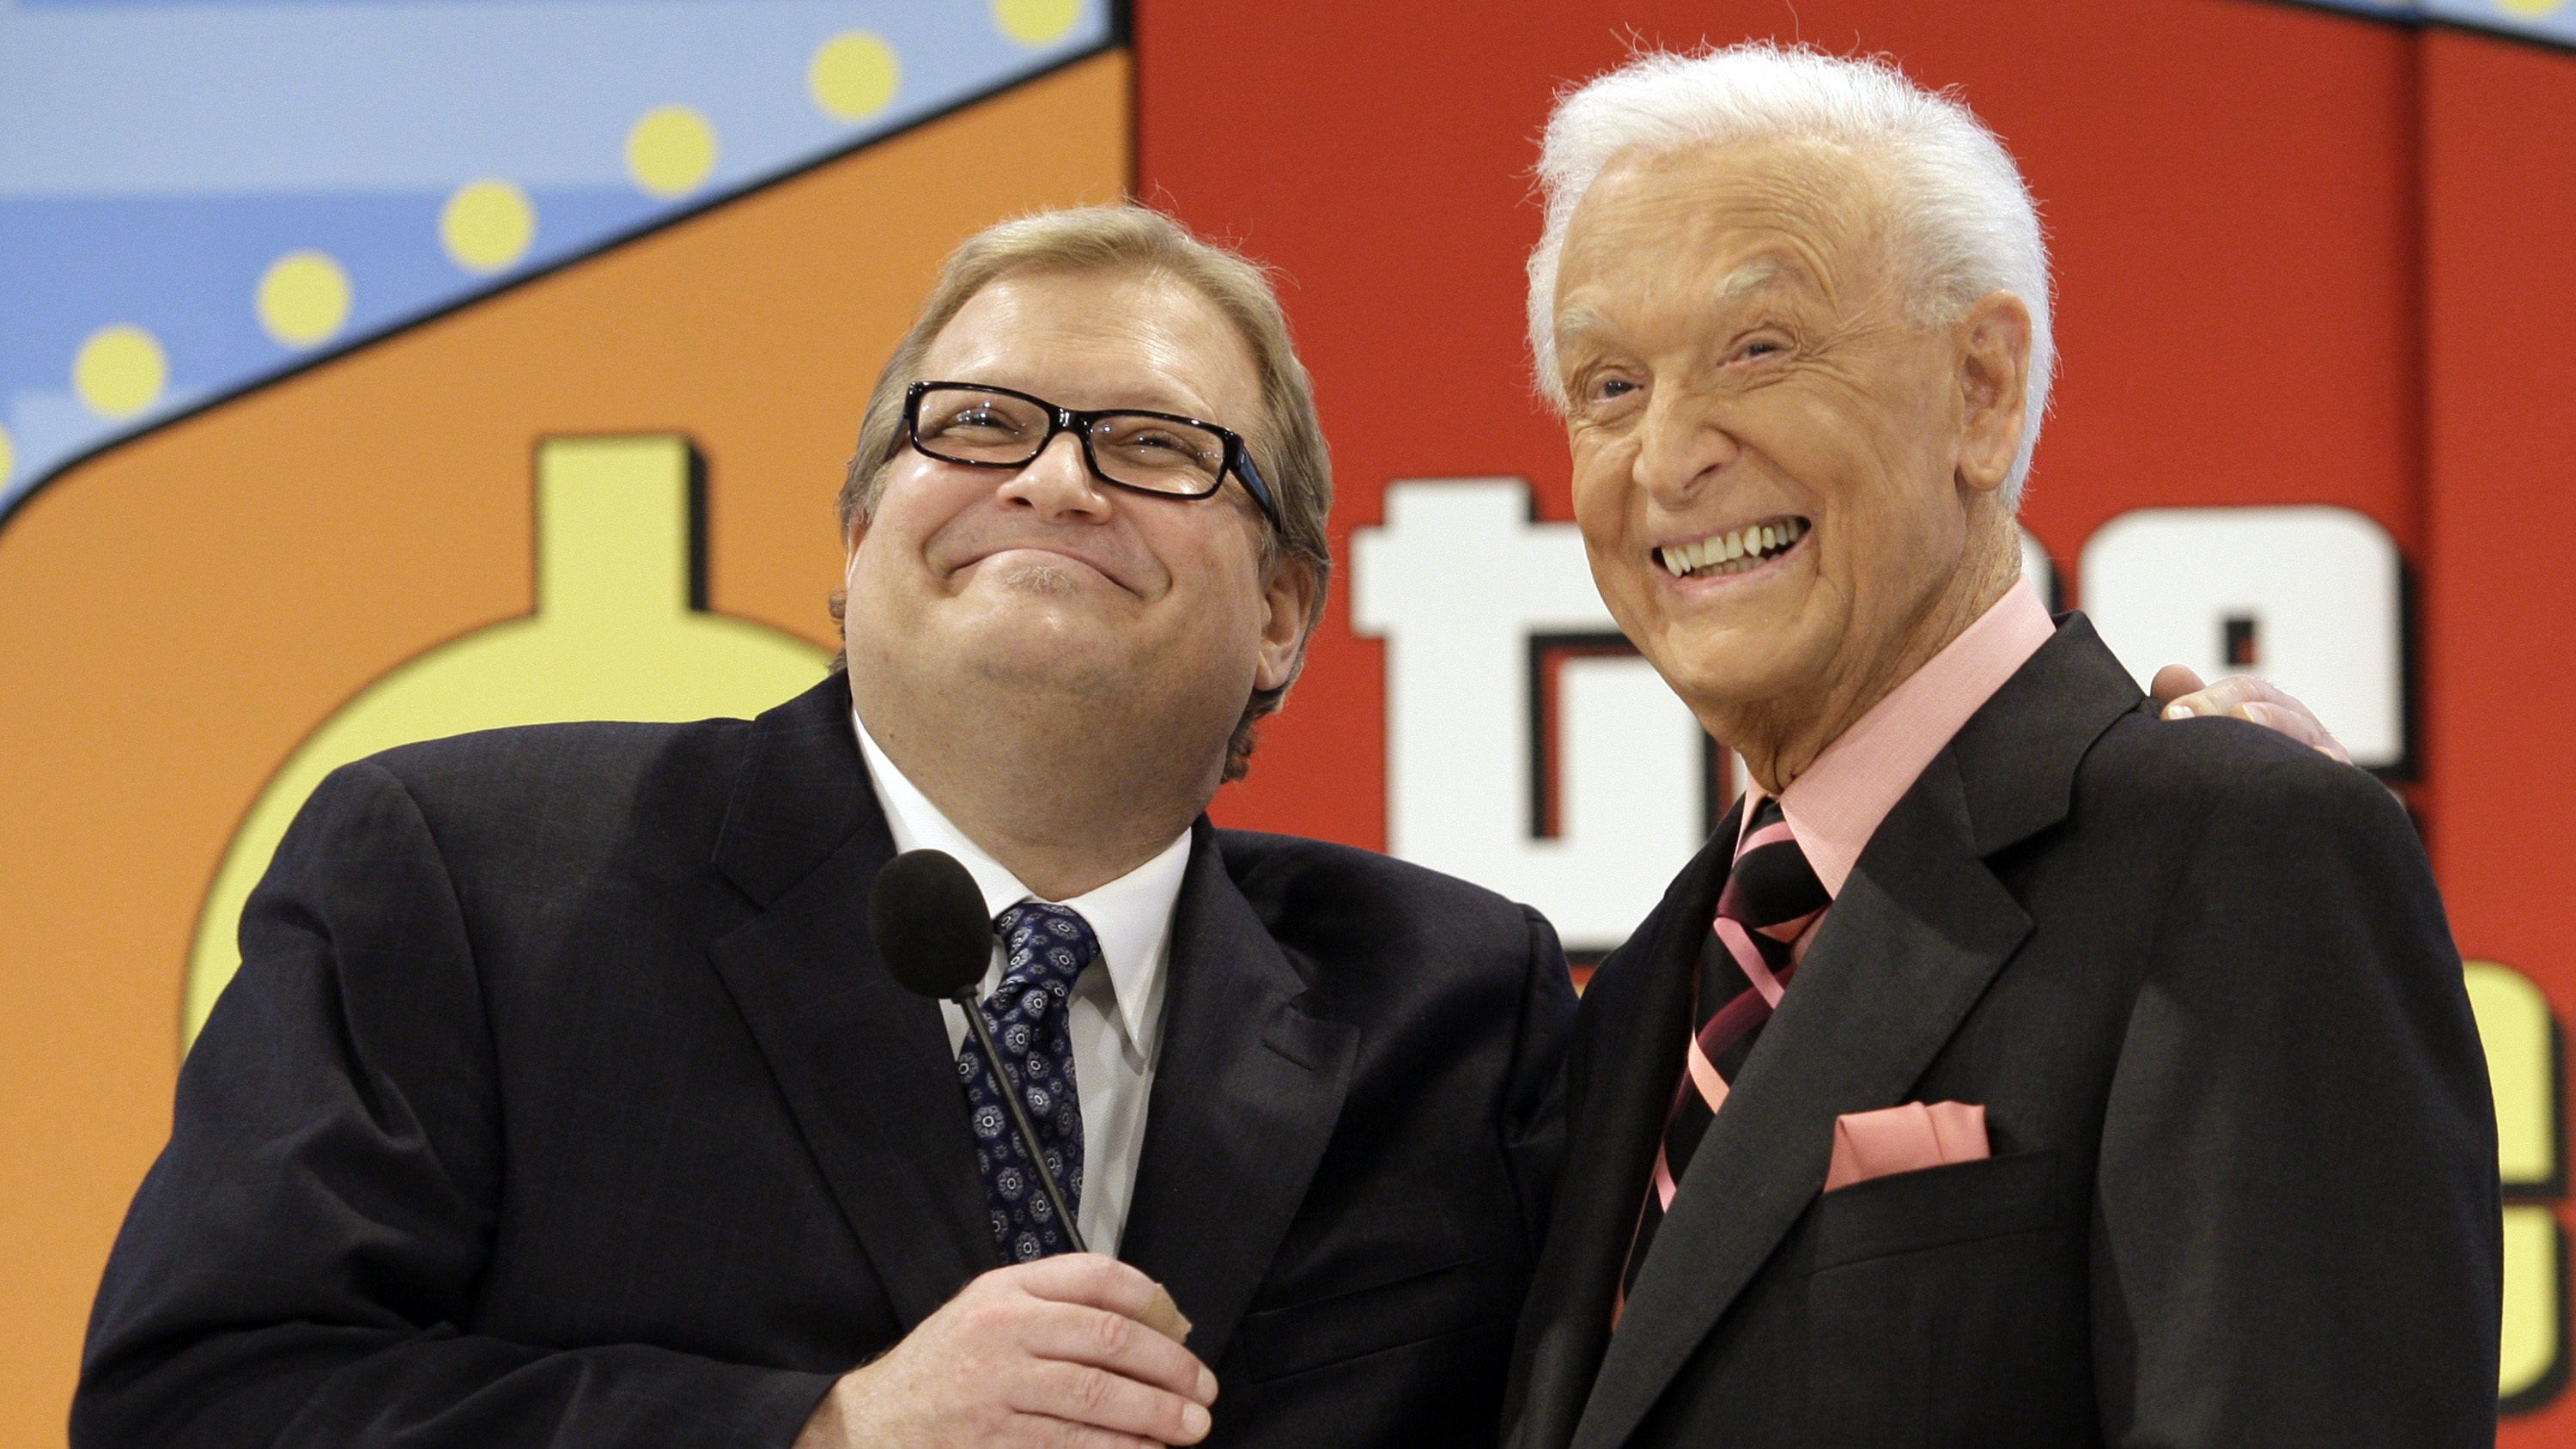 The Price is Right show host, comedian Drew Carey, left, shares a moment with longtime host Bob Barke